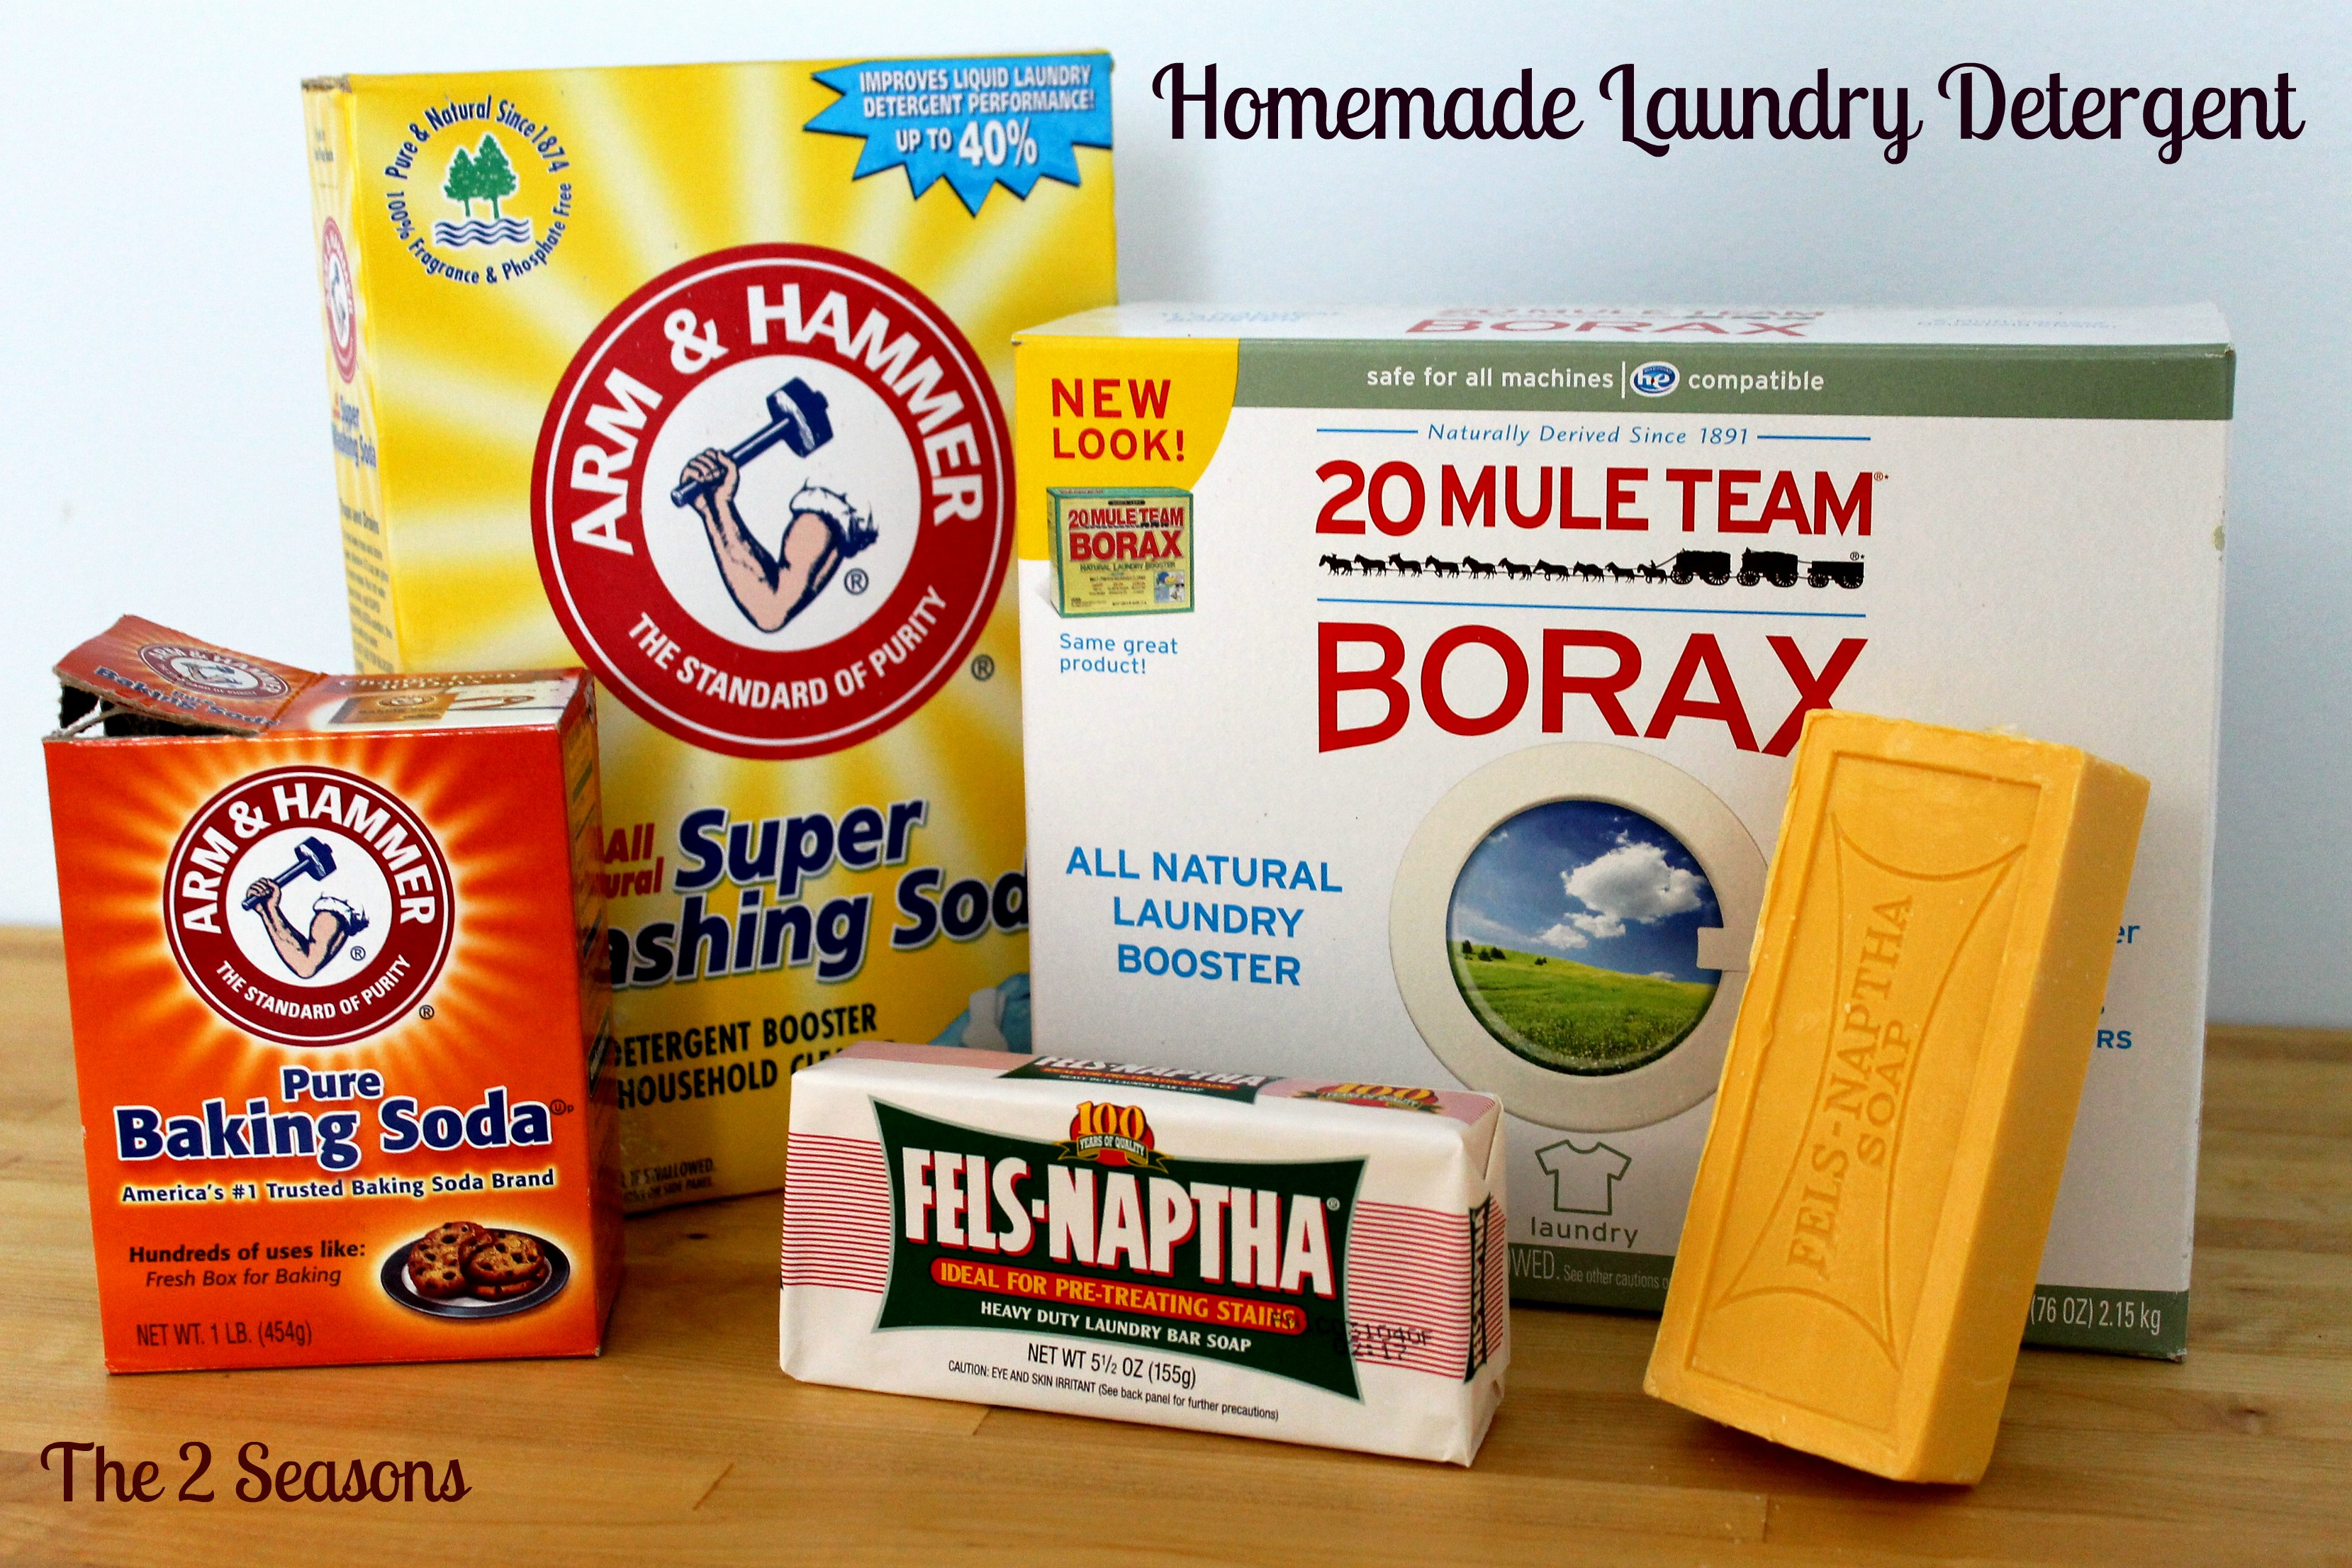 Detergent NEW ingredients - Our Organic Laundry Routine